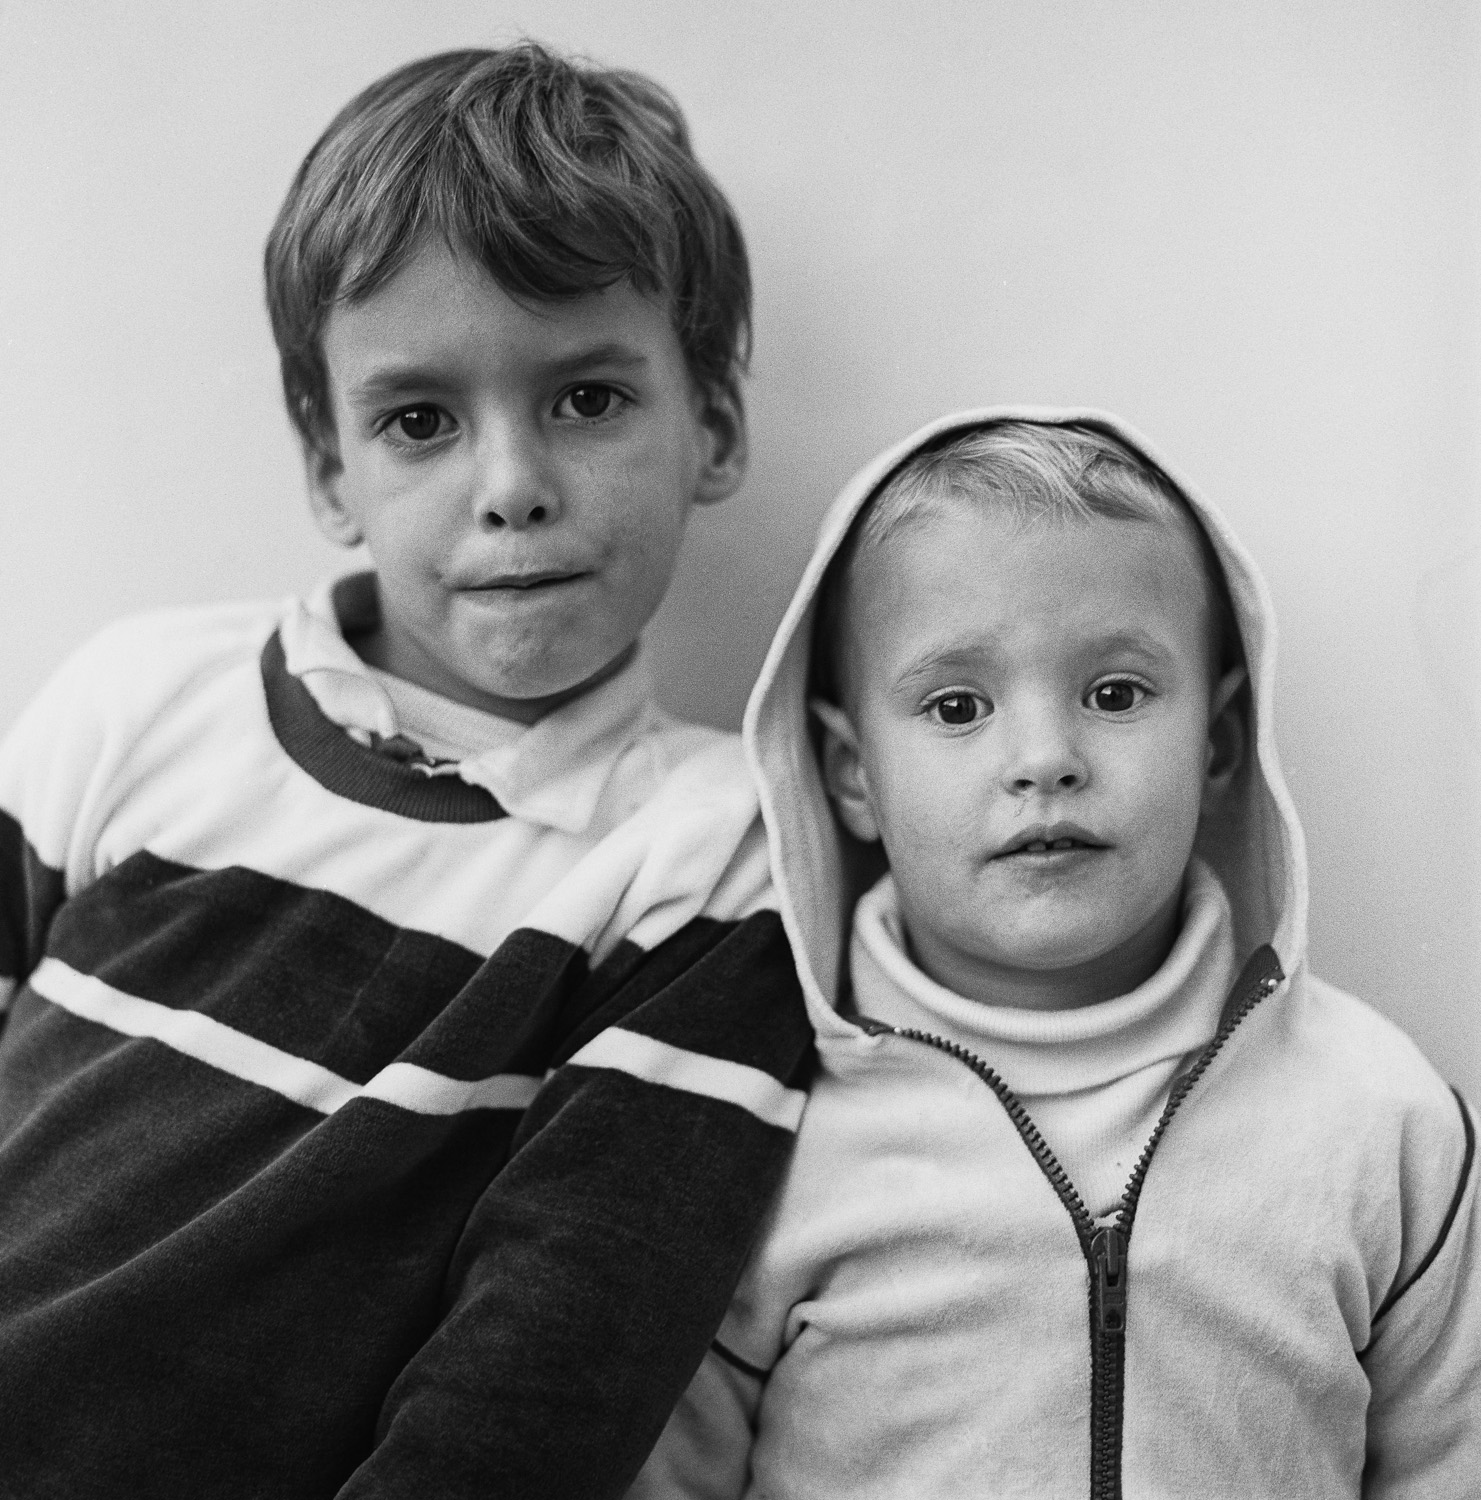 Yaniv and Liad, Jerusalem - 1984